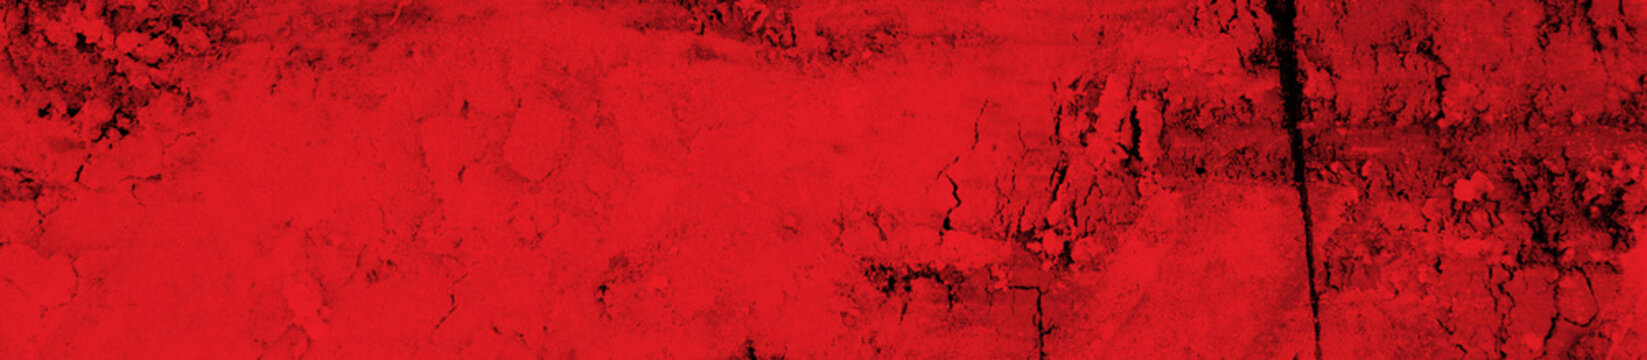 abstract grunge red and black colors background